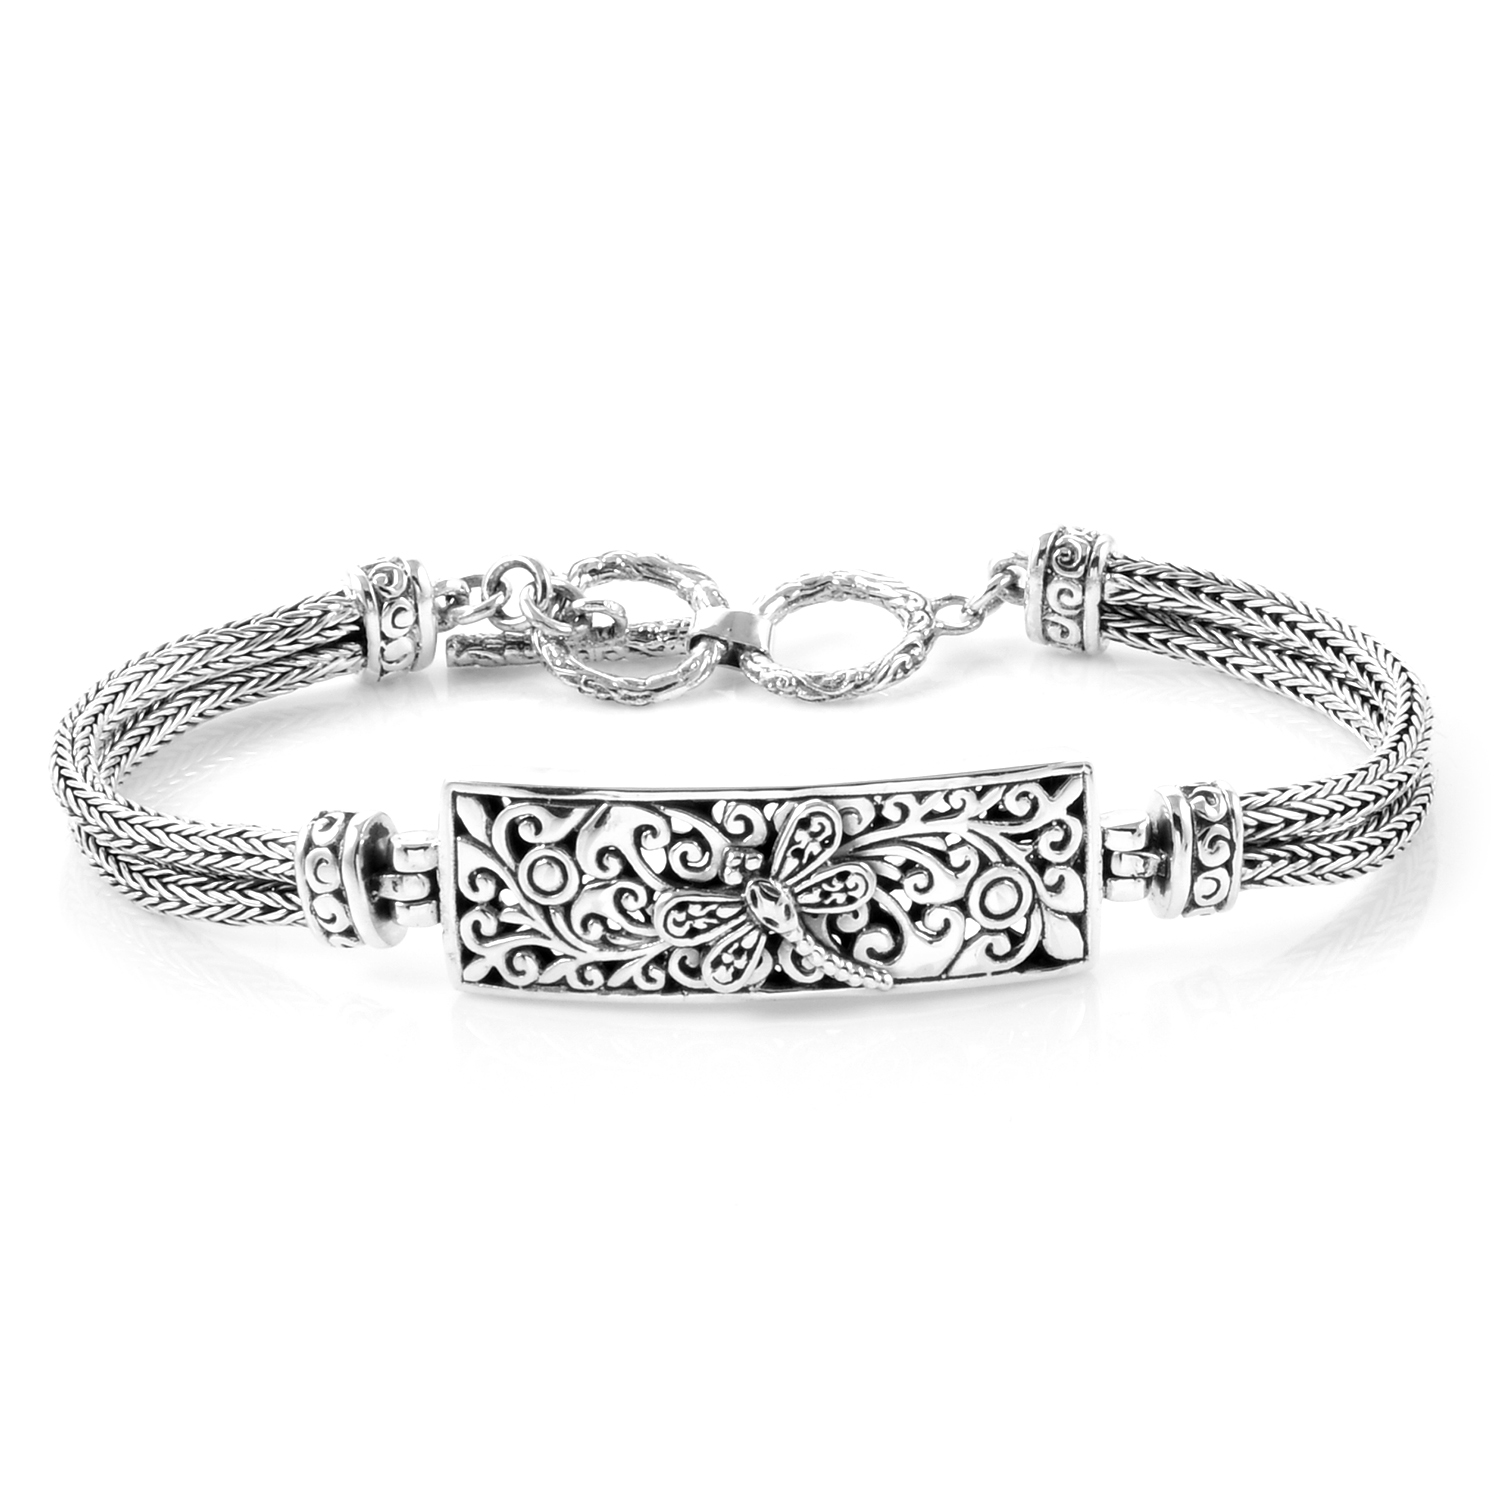 Bali Legacy Collection Sterling Silver Dragonfly Tulang Naga Bracelet With Toggle Clasp 7 50 In